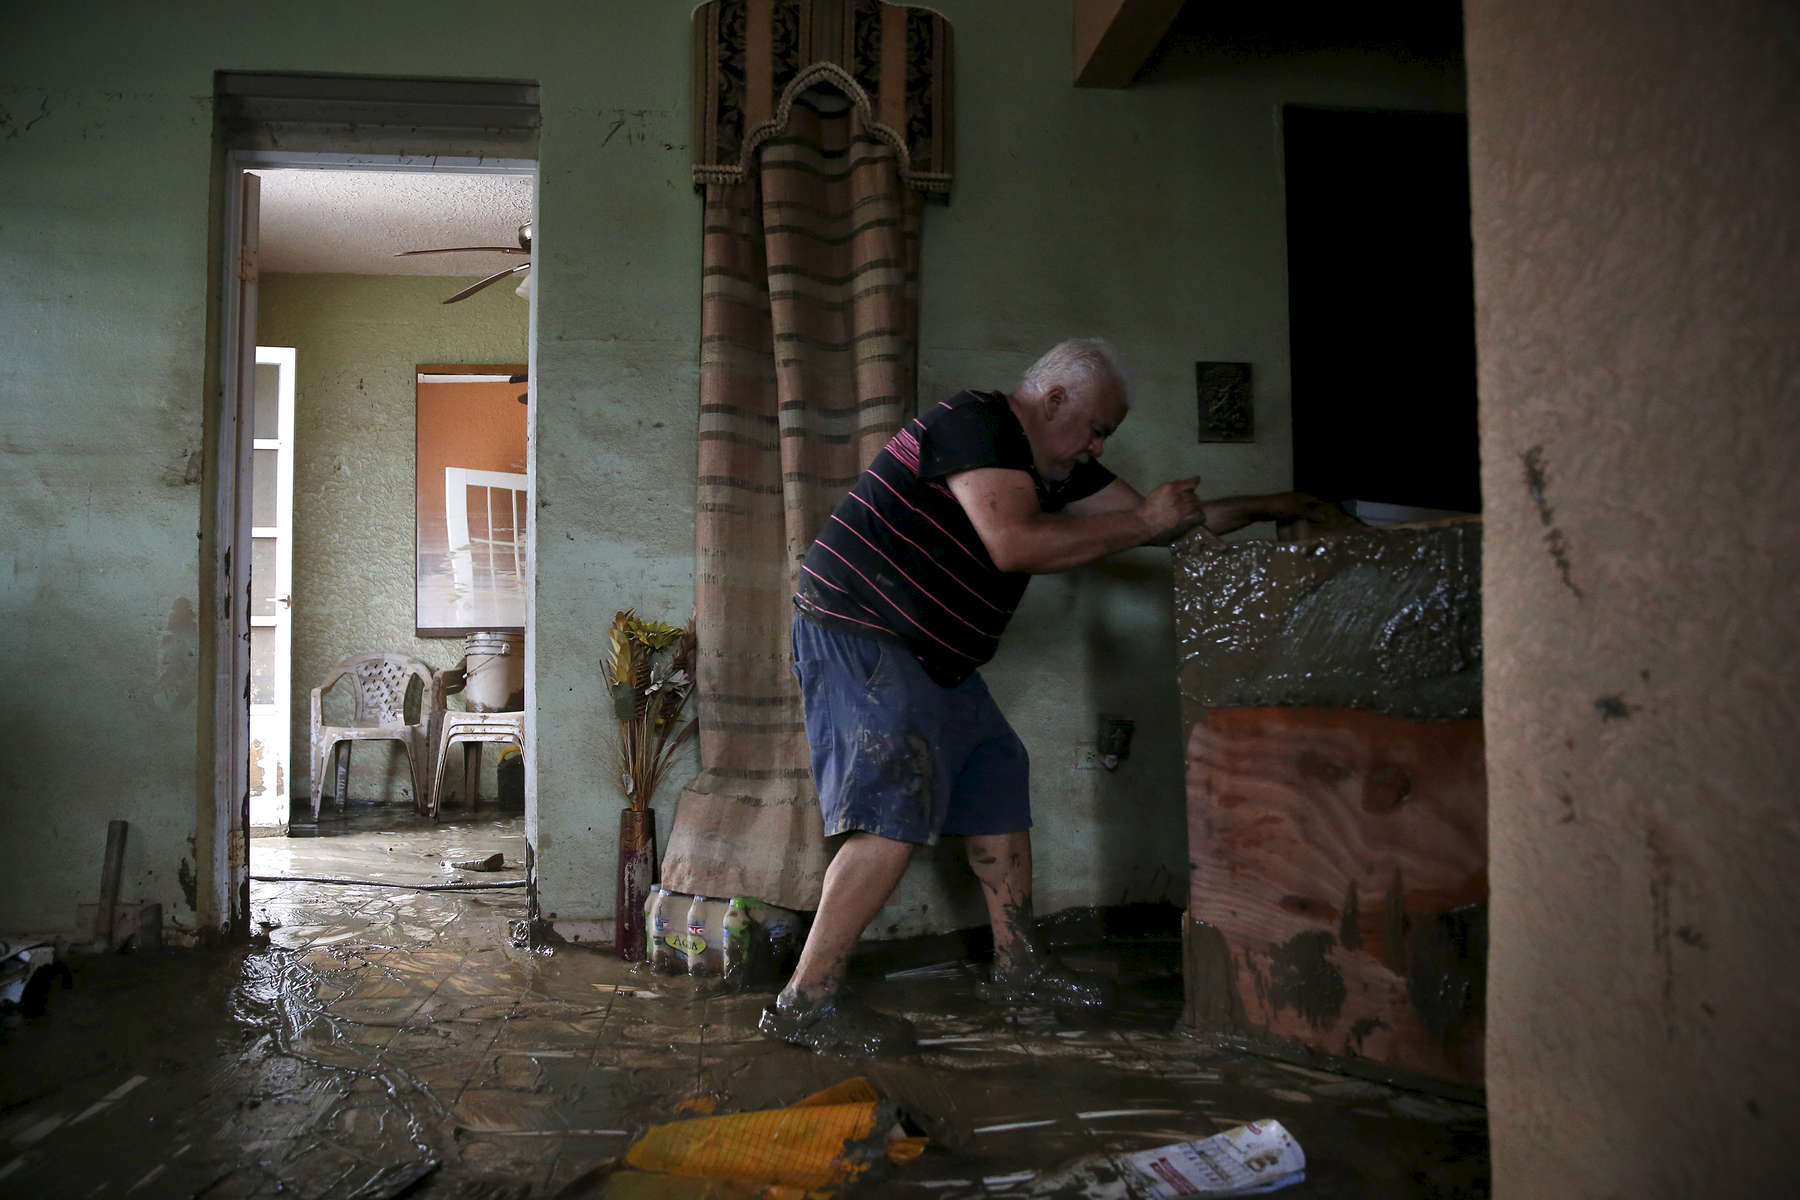 Toa Baja, Puerto Rico -- 9/30/2017 -  In Toa Baja, on the island's northern coast, bulldozers worked to clear mud from the streets as families were digging out, trying to salvage the few belongings that were left. Geraldo Rivera, 51, helps his neighbor move heavy furniture out of his home which was ruined by flood waters.